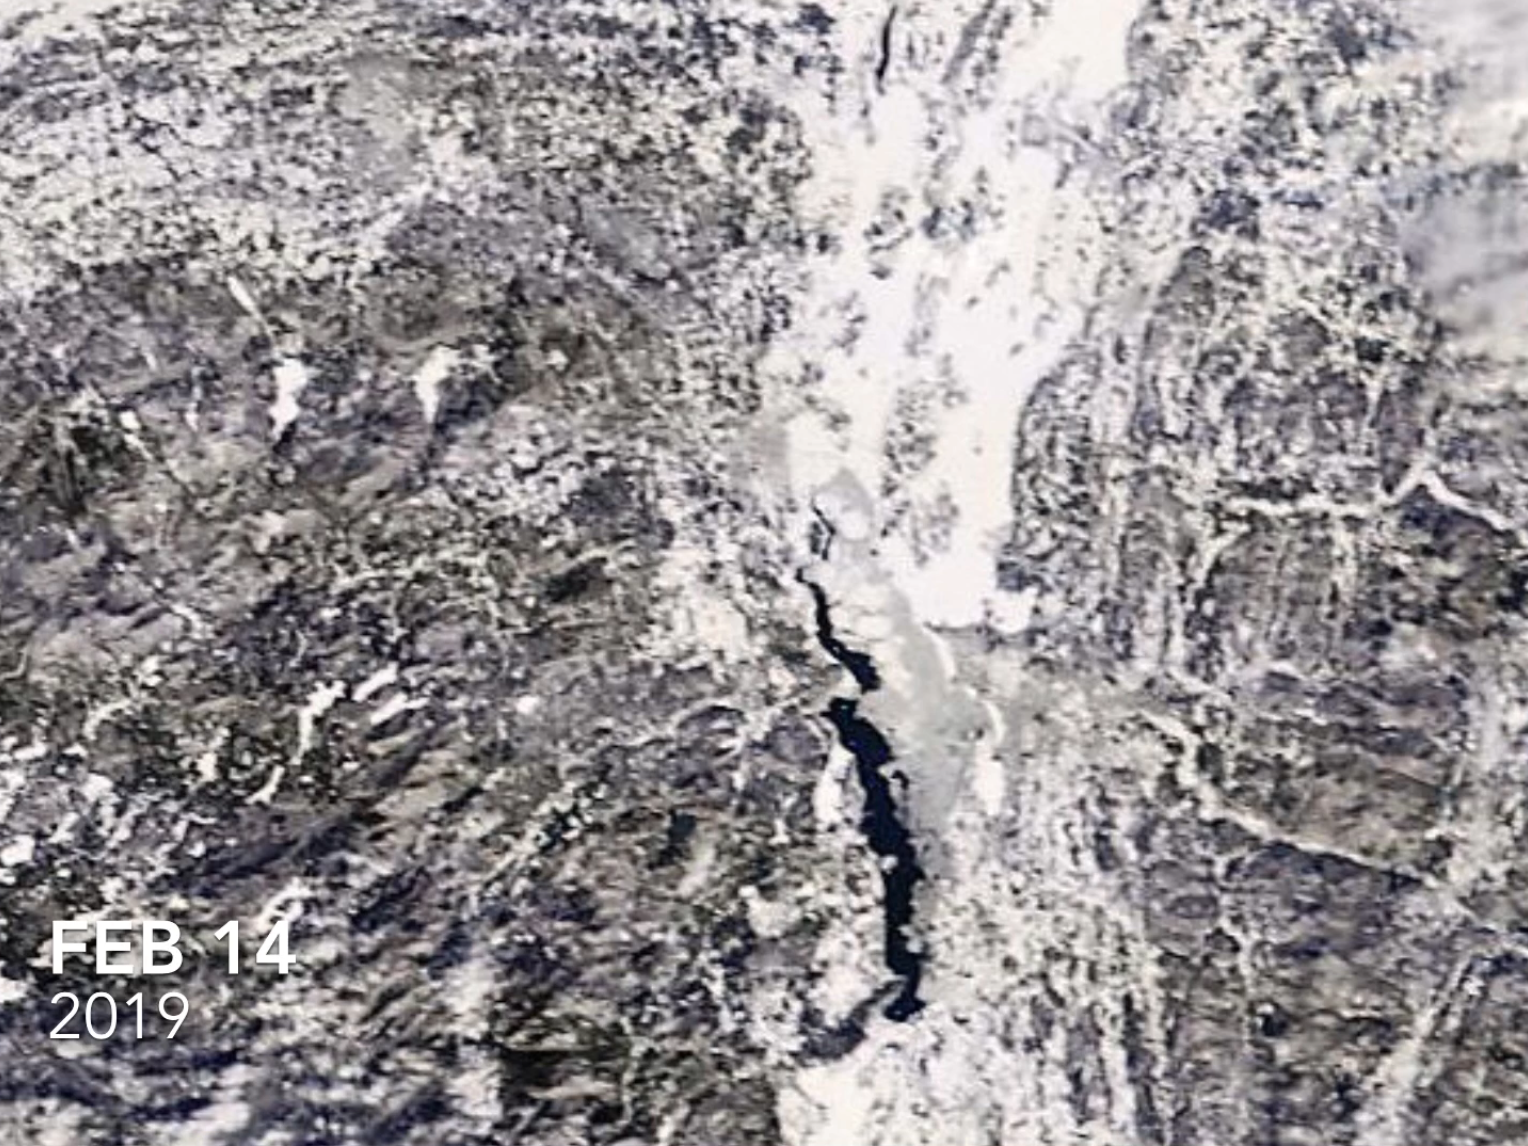 Lake Champlain, as photographed by a NASA satellite on Feb 14, 2019.